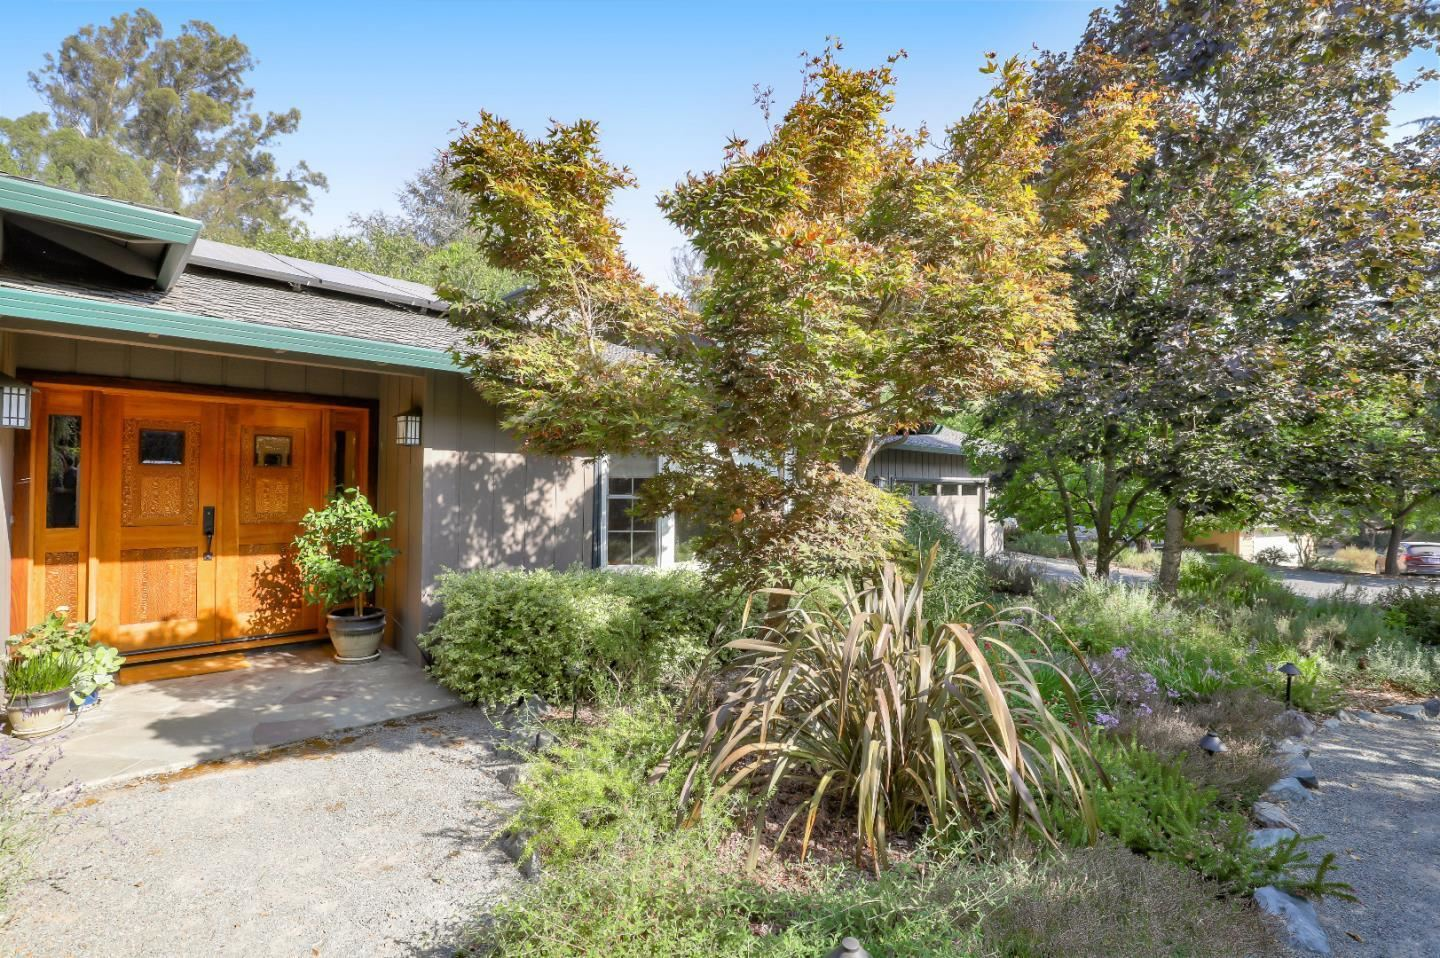 Photo for 17800 Woodland AVE, MORGAN HILL, CA 95037 (MLS # ML81829820)